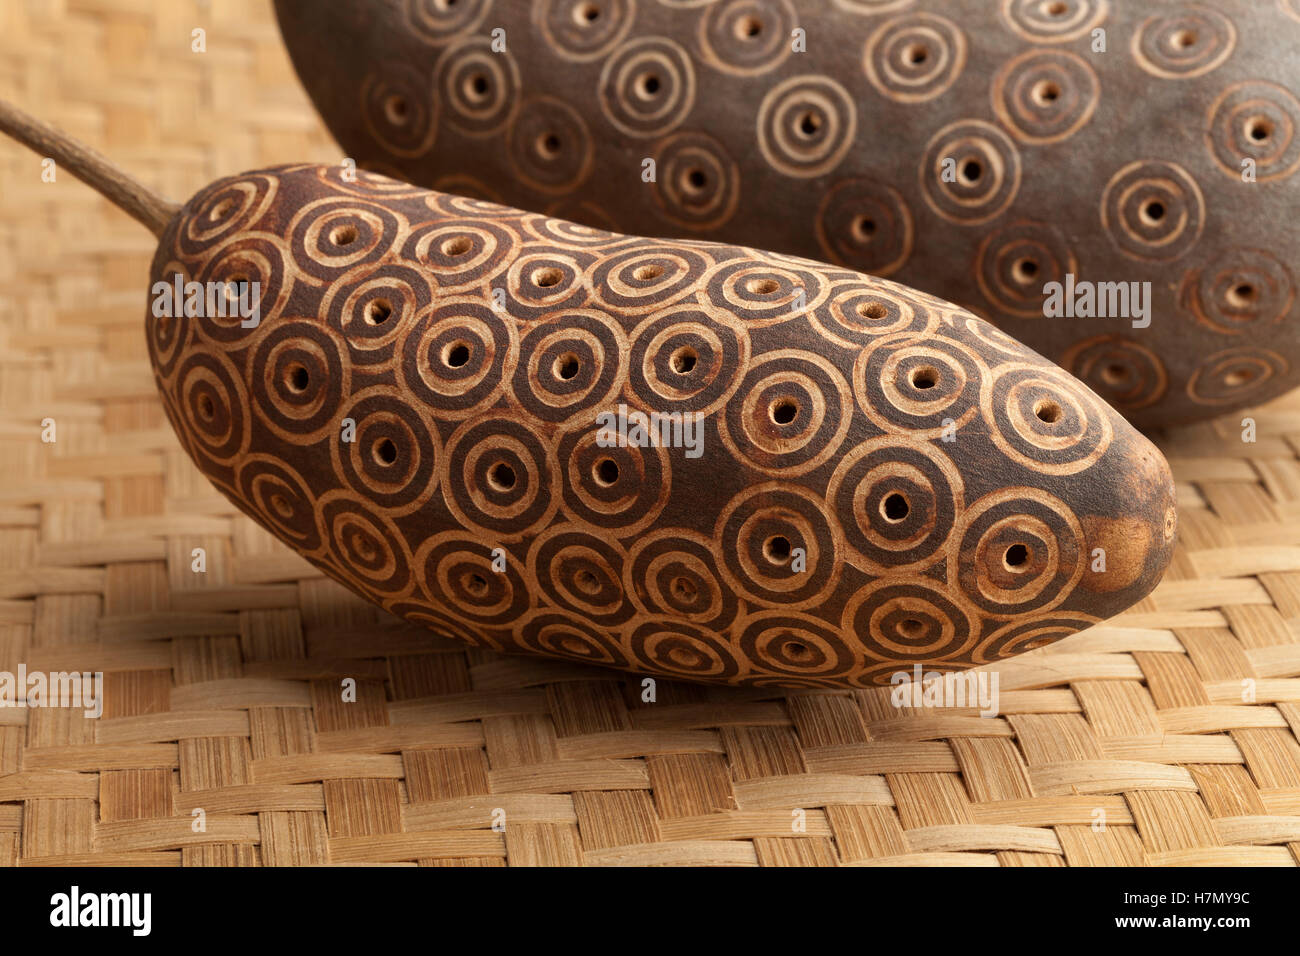 African percussion instrument close up - Stock Image